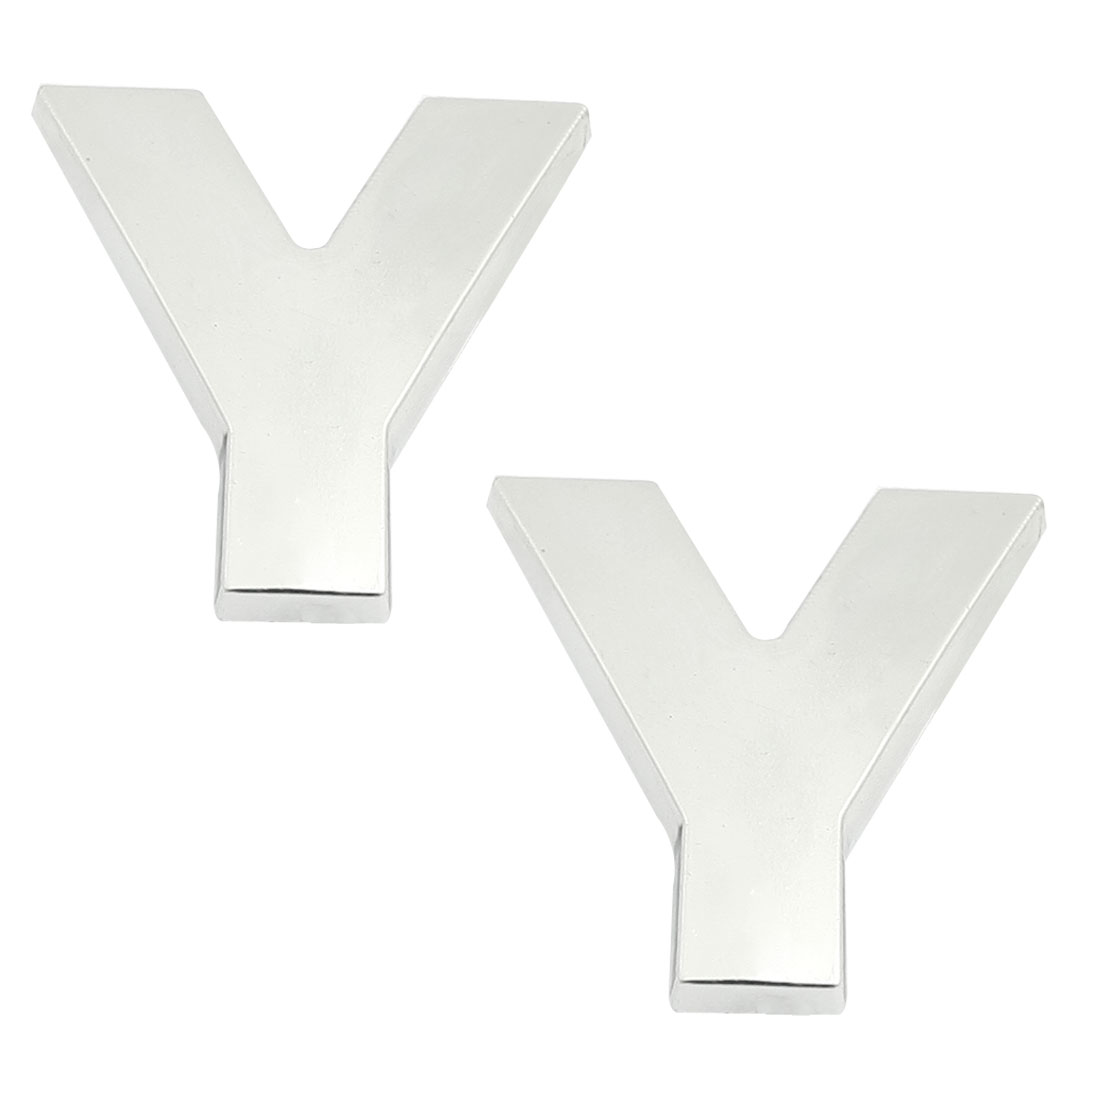 Car Truck Hood Door Letter Y 3D Emblem Badge Sticker Silver Tone 2 Pcs